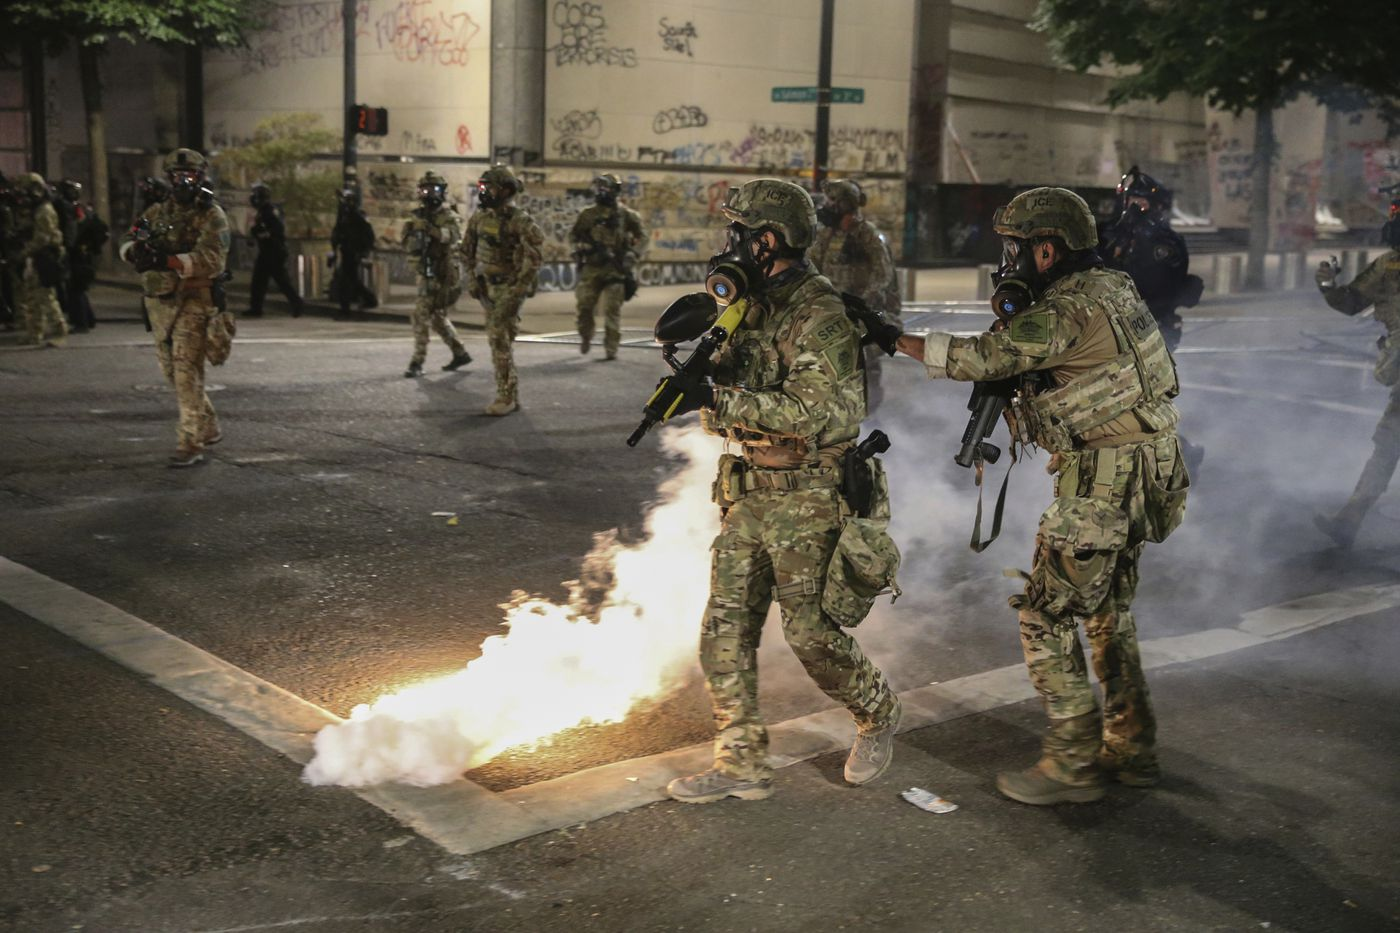 Congressional leaders demand probe of crackdown on peaceful protesters by feds 1